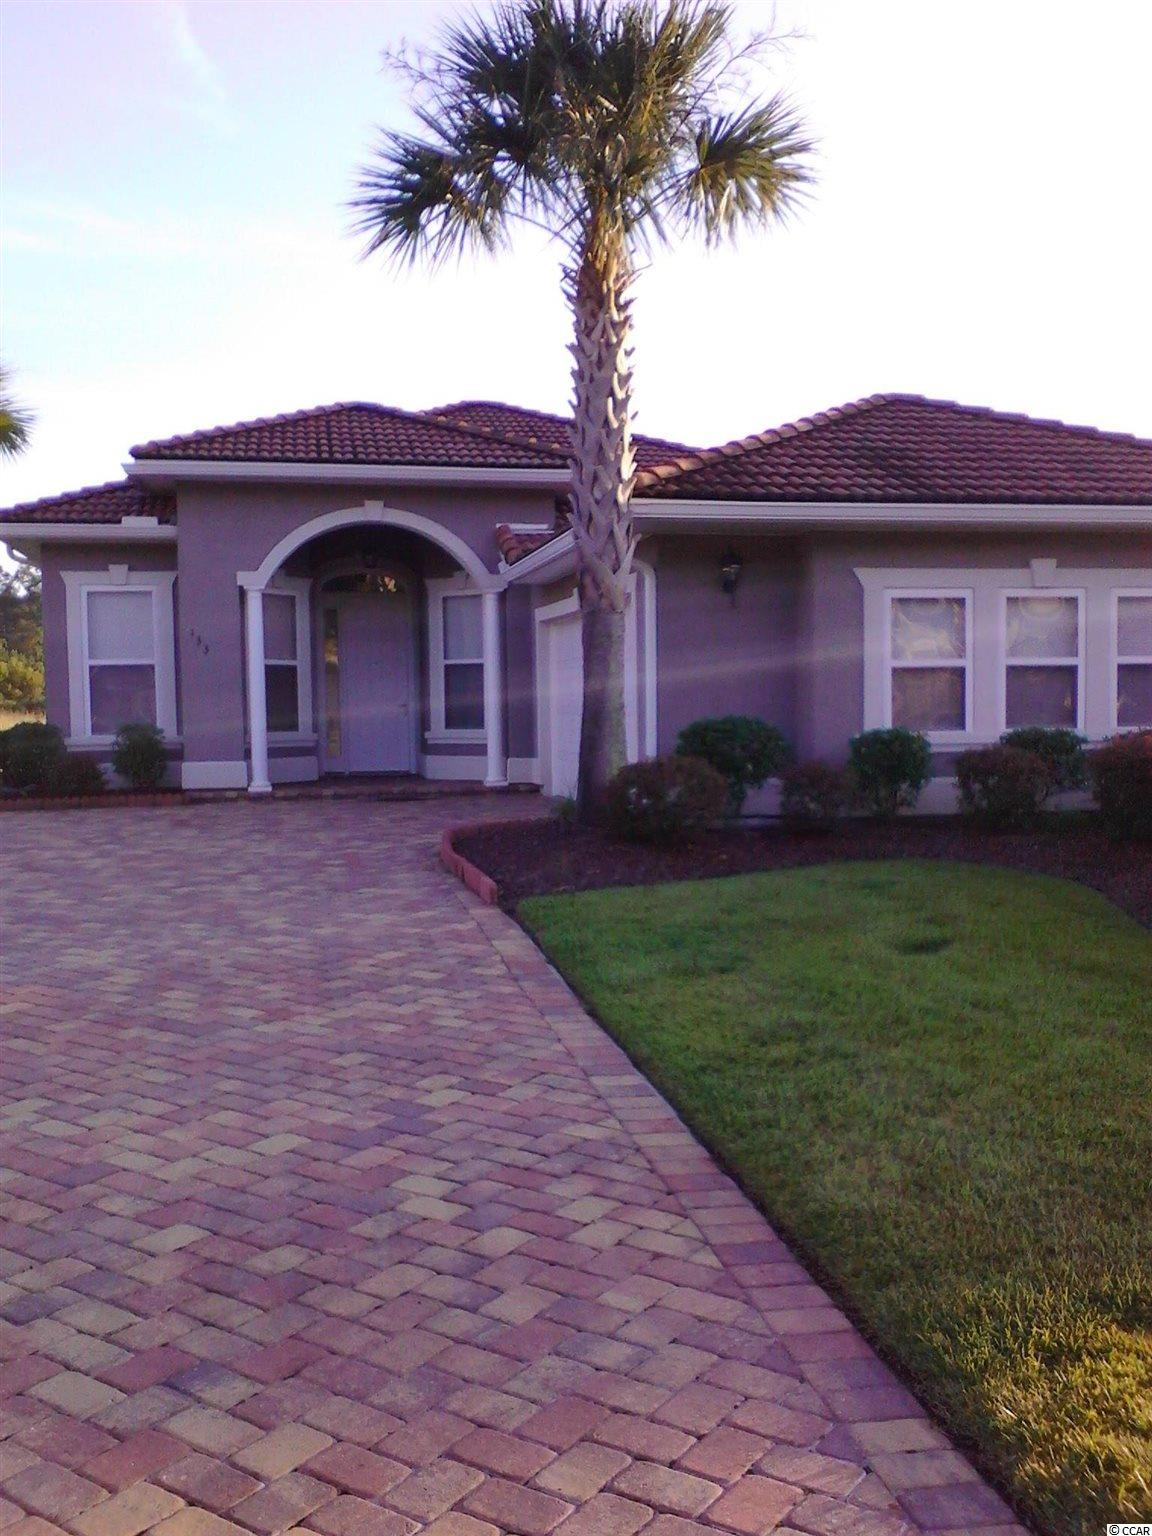 """WOW...Beautiful, Beautiful Upscale Mediterranean Style Home Completely Restored Like NEW, and Only 10-mins To Beach!! Get Ready To Write Your """"Highest & Best Offer""""...Will Sell Fast!! Home Features: * 12-feet High Ceilings with Recessed Lights and Open Concept Views From All Glass Doors Exit to Large Screen-in Porch and Privacy-Fenced Backyard! * Eat-in Tablespace Kitchen with Granite Breakfast Bar and Stainless Steel Appliances Ceramic Tile Floors-Baths and Foyer!! * Hurricane-Proof, Terracotta Tile Roof, Brick Paver Driveways & Sidewalks, Irrigation Sprinkler System with Rain Sensor and Timer Box, Lighted Palm Trees Thru out The Community! * Home has Spacious 3-bdm+2-baths, and 2-Car Garage w/Cable Setup (Ready for Man-Cave)!! * Private Exit Door to Master Bedroom Suite, Master Bath with Double-Bowl Sinks, Walk-in Closet, Elevated Toilet, and Ahhh.. """"Sit-down Shower""""!!! * NO SNOW, HAIL, ICE...Sooo Get Ready To Relax at the Beach!!"""